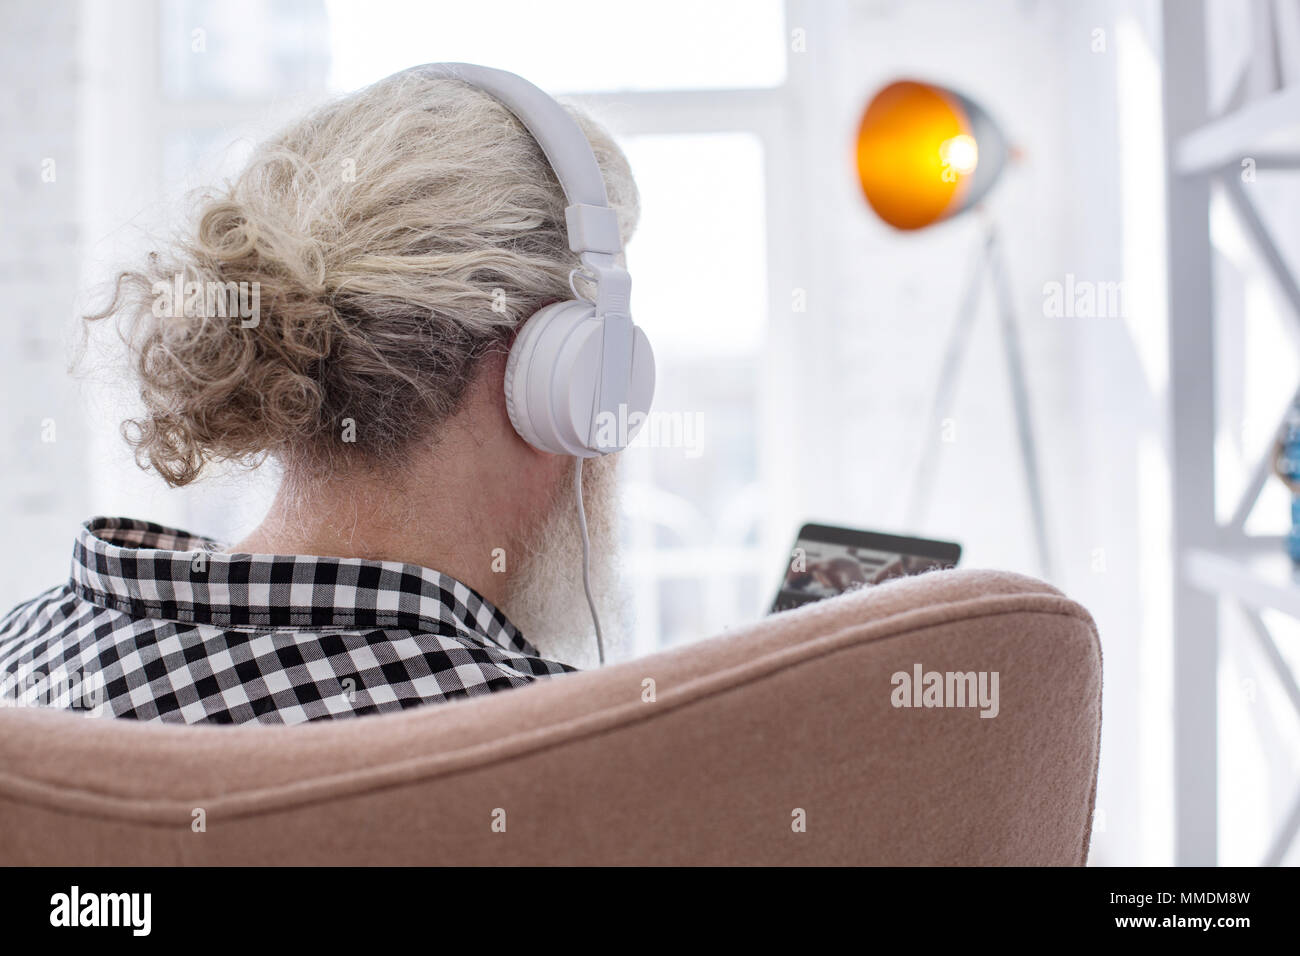 Pleasant senior man looking through his playlist - Stock Image